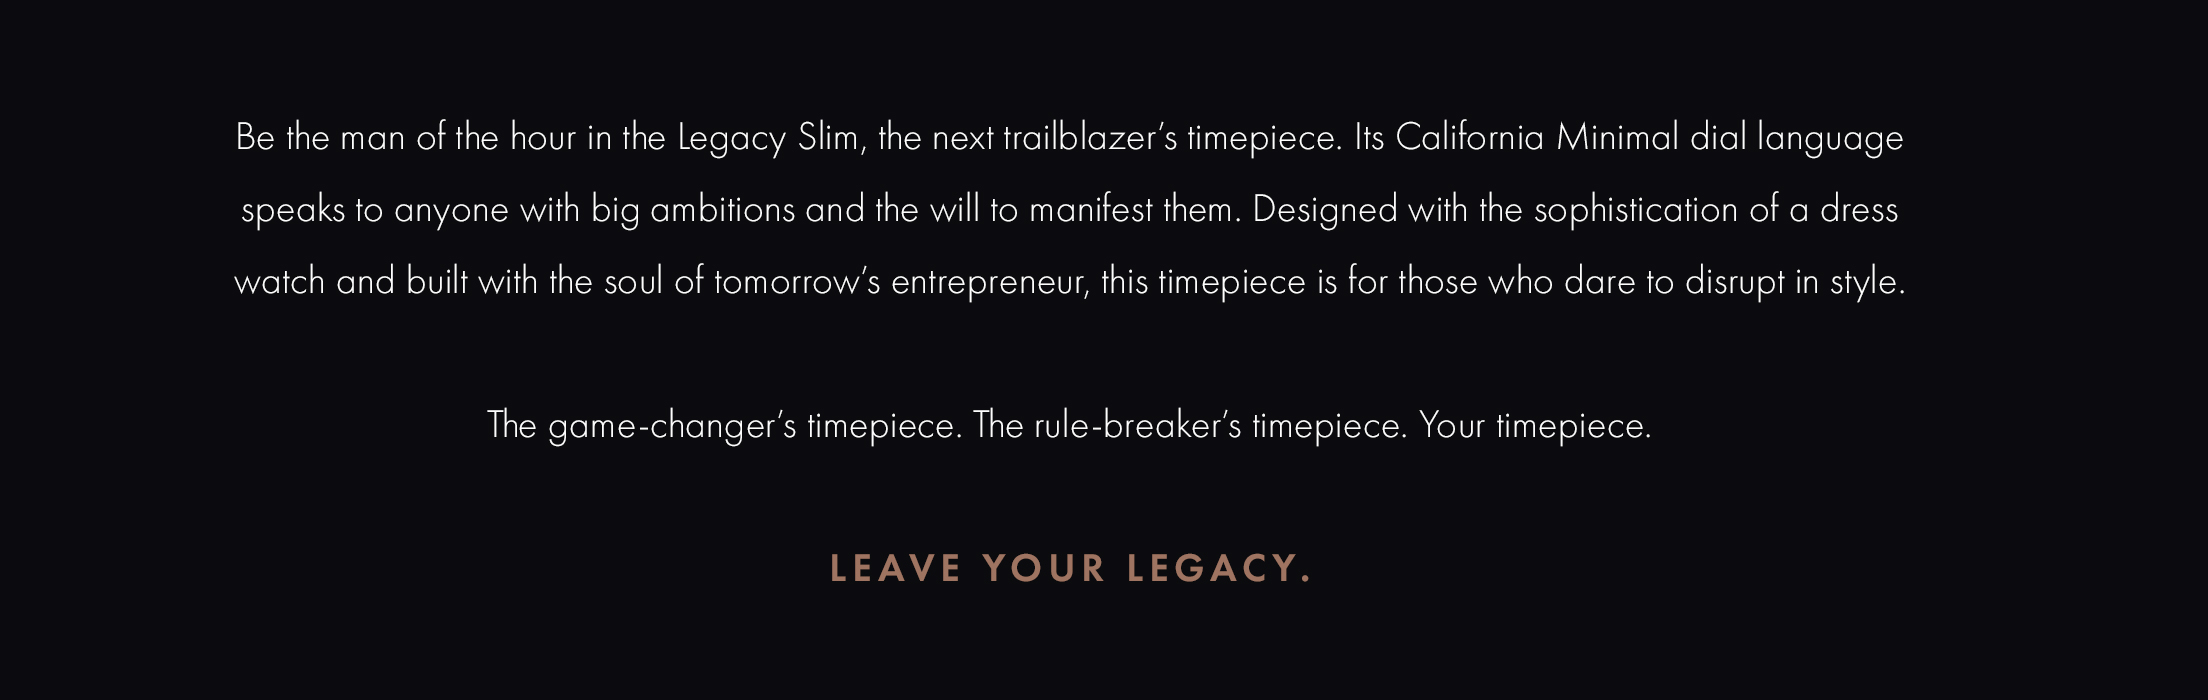 Be the man of the hour in the Legacy Slim, the next trailblazer's timepiece. Its California Minimal dial language speaks to anyone with big ambitions and all the will to manifest them. Designed with the sophistication of a dress watch and built with the soul of tomorrow's entrepreneur, this timepiece is for those who dare to disrupt in style. The game-changer's timepiece. The rule-breaker's timepiece. Your timepiece. Leave Your Legacy.